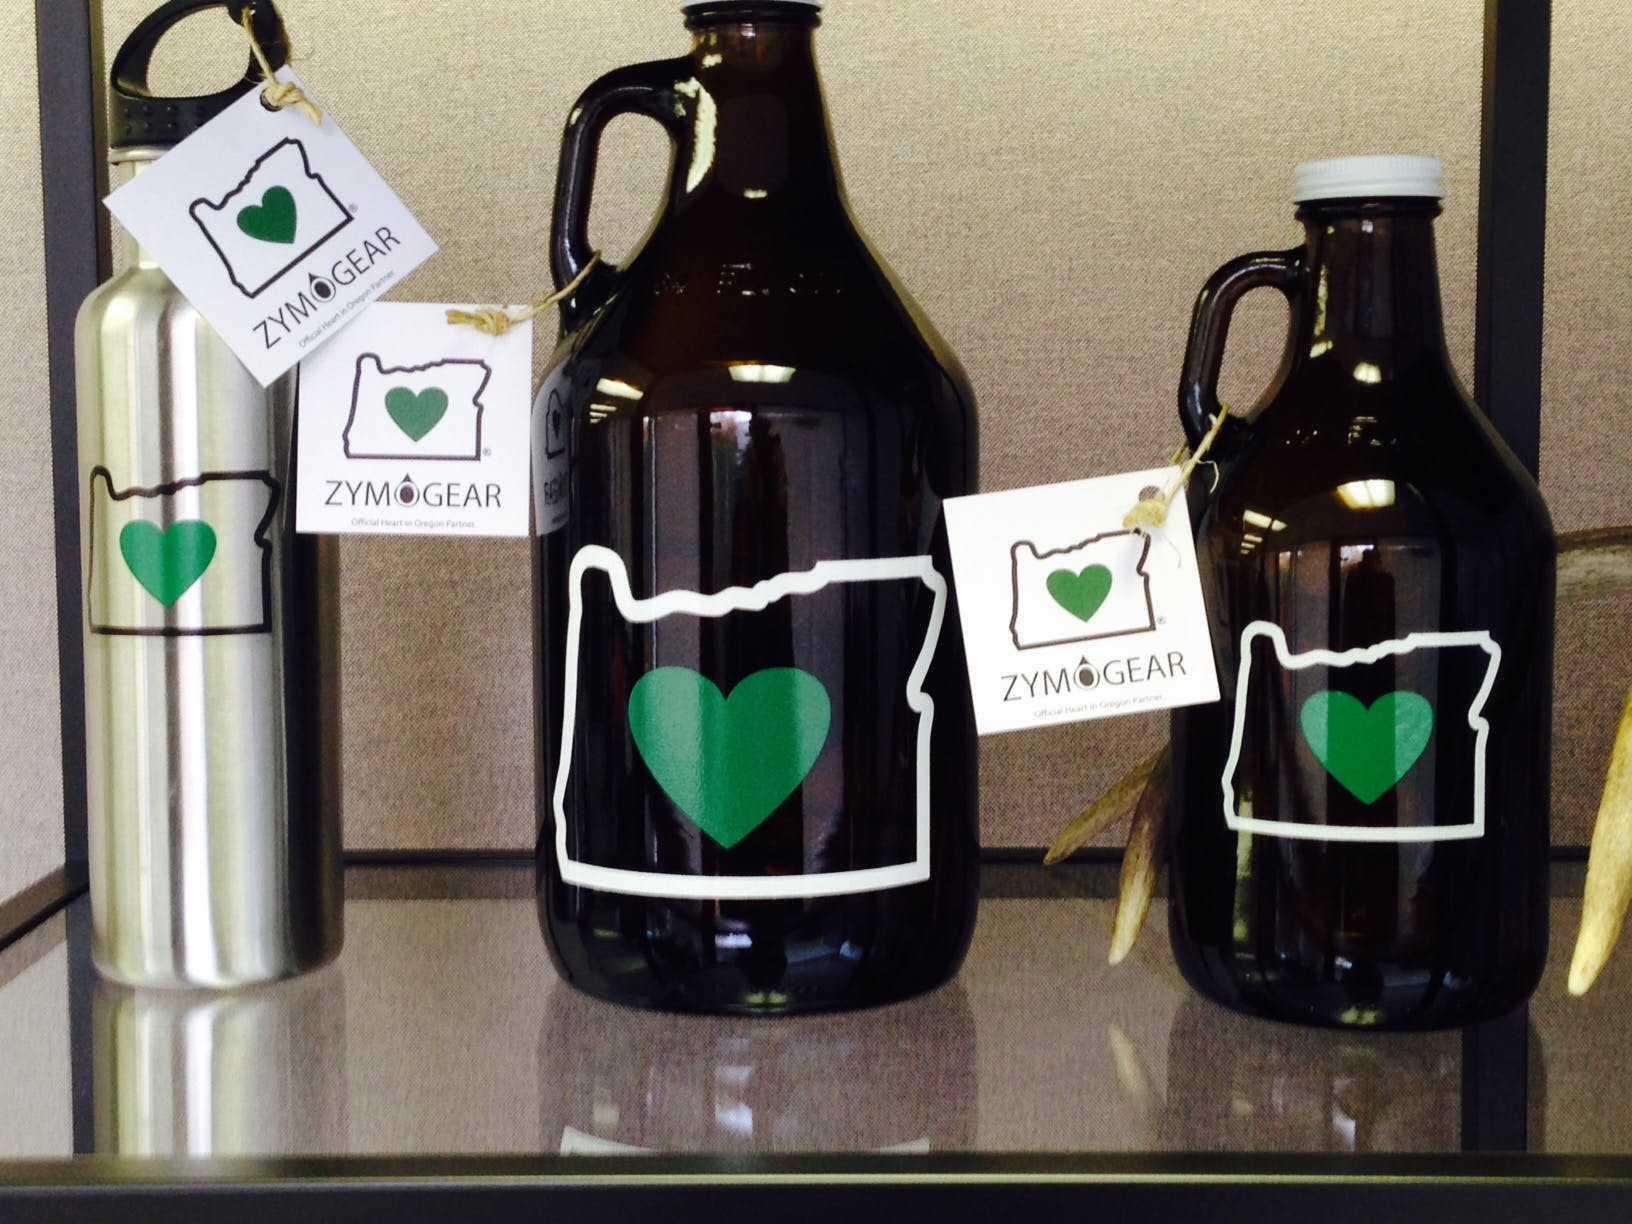 Amber Growlers. Growler sold by Zymogear